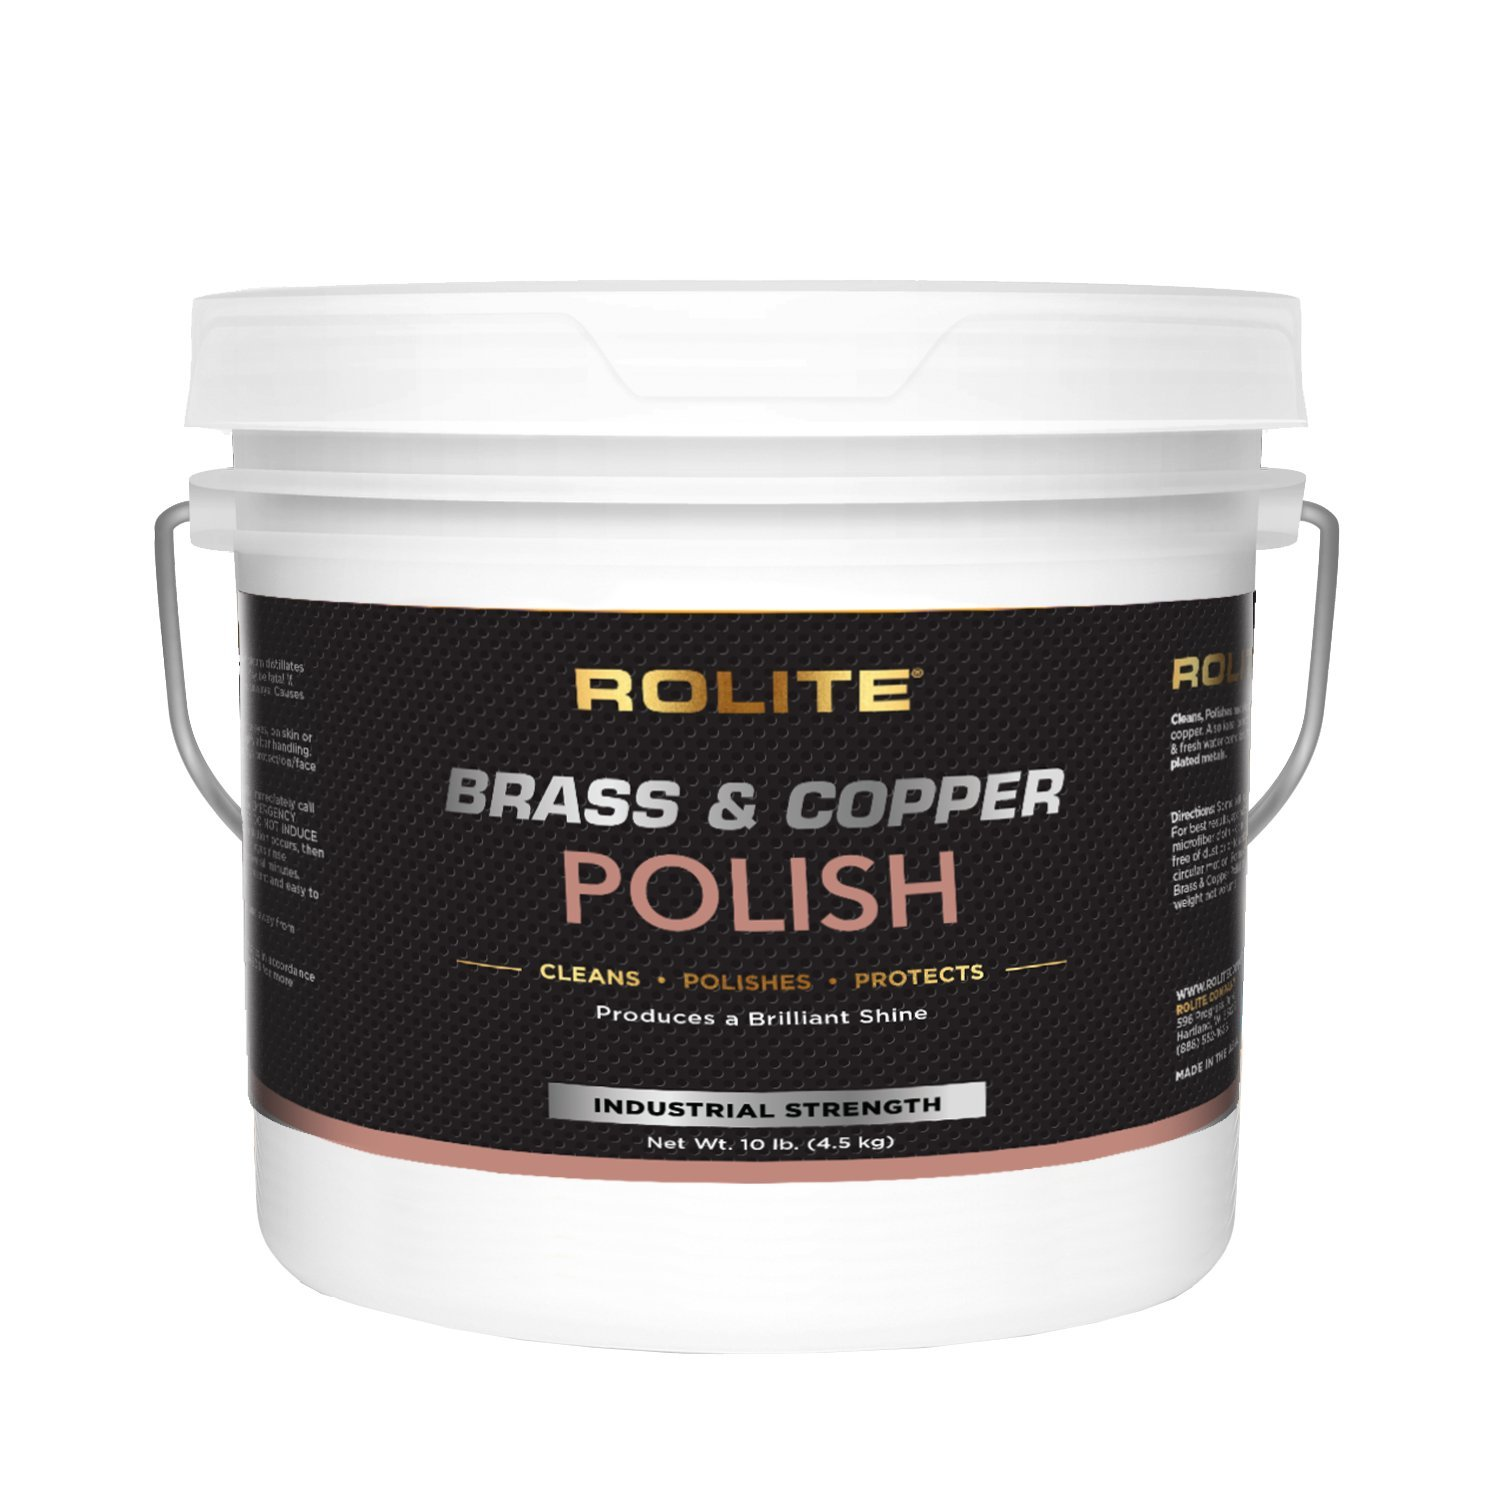 Rolite Brass & Copper Polish (10lb) Instant Polishing & Tarnish Removal on Railings, Elevators, Fixtures, Hotels, Cruise Ships, Office Buildings by Rolite (Image #1)